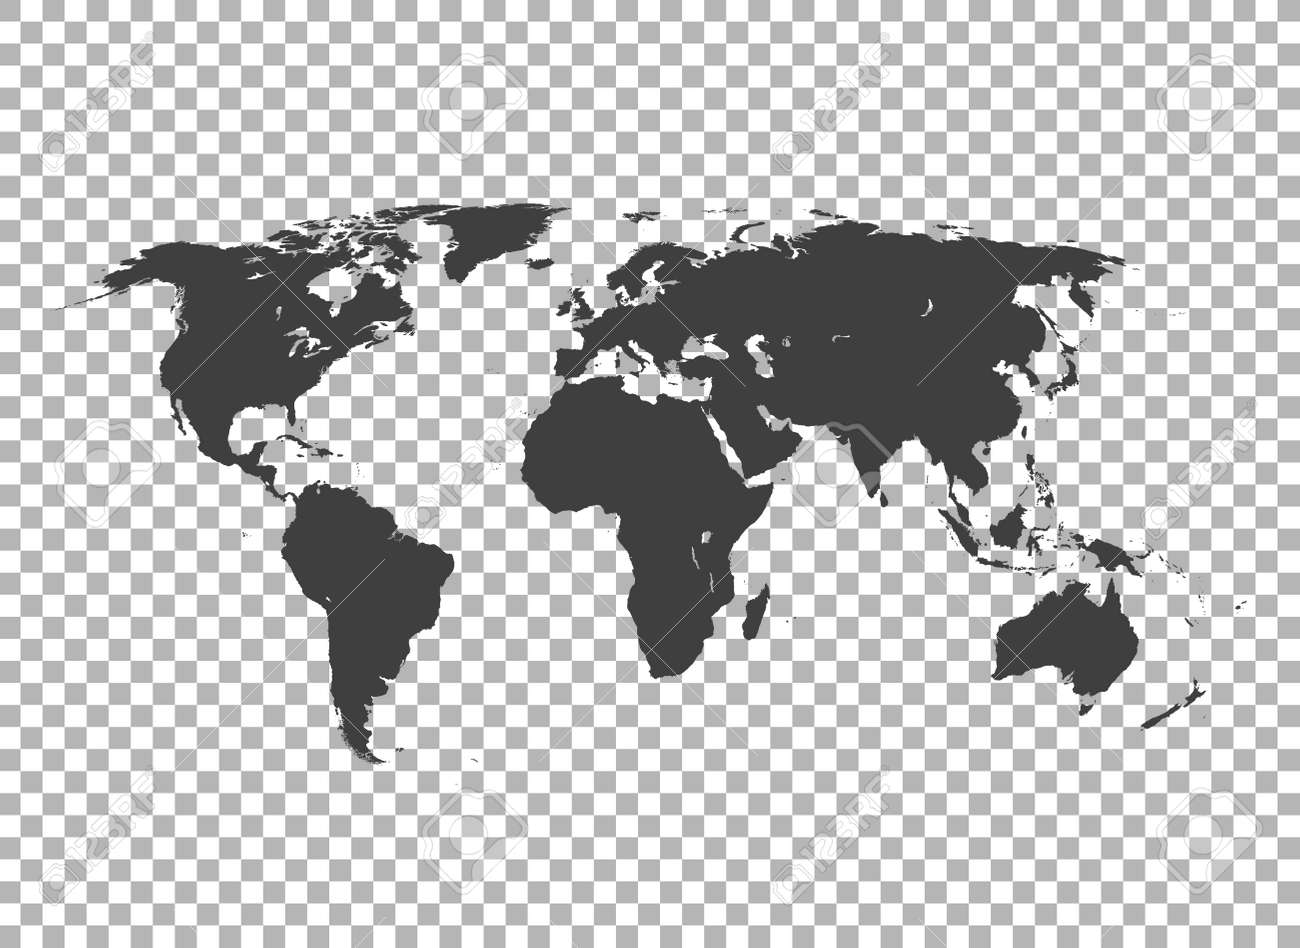 map of world - 159287179